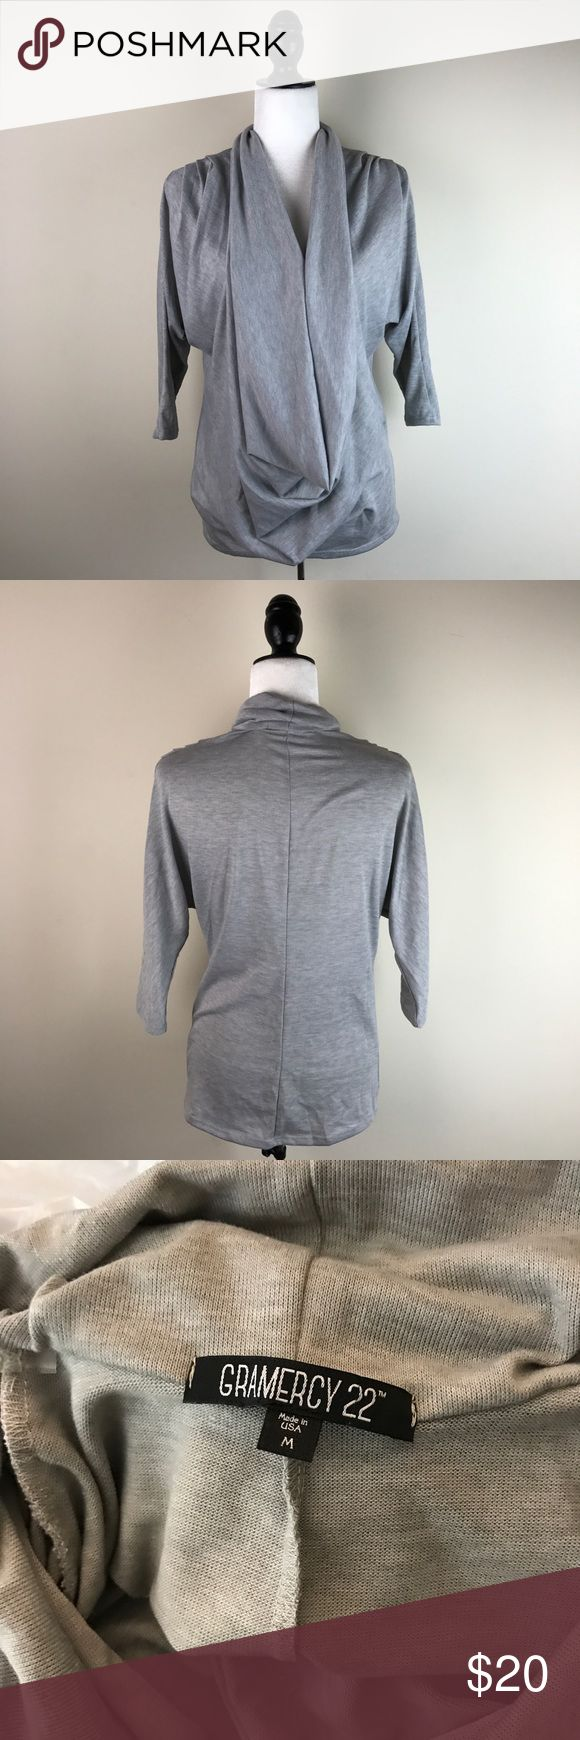 """Gramercy 22 Grey Slouchy Top Love the slouchy oversized look of this top. Please see the photo of it from the side to see how much fabric it is. It drapes in the front. Has a small pick on the front of the shirt, but it is hidden by the drape when worn. So cute! Gently used with no other flaws. 82% polyester, 14% rayon, 4% spandex.   Measurements laying flat (without stretching)— Armpit to armpit: 19"""" Length, shoulder to hem: 26"""" Gramercy 22 Tops"""